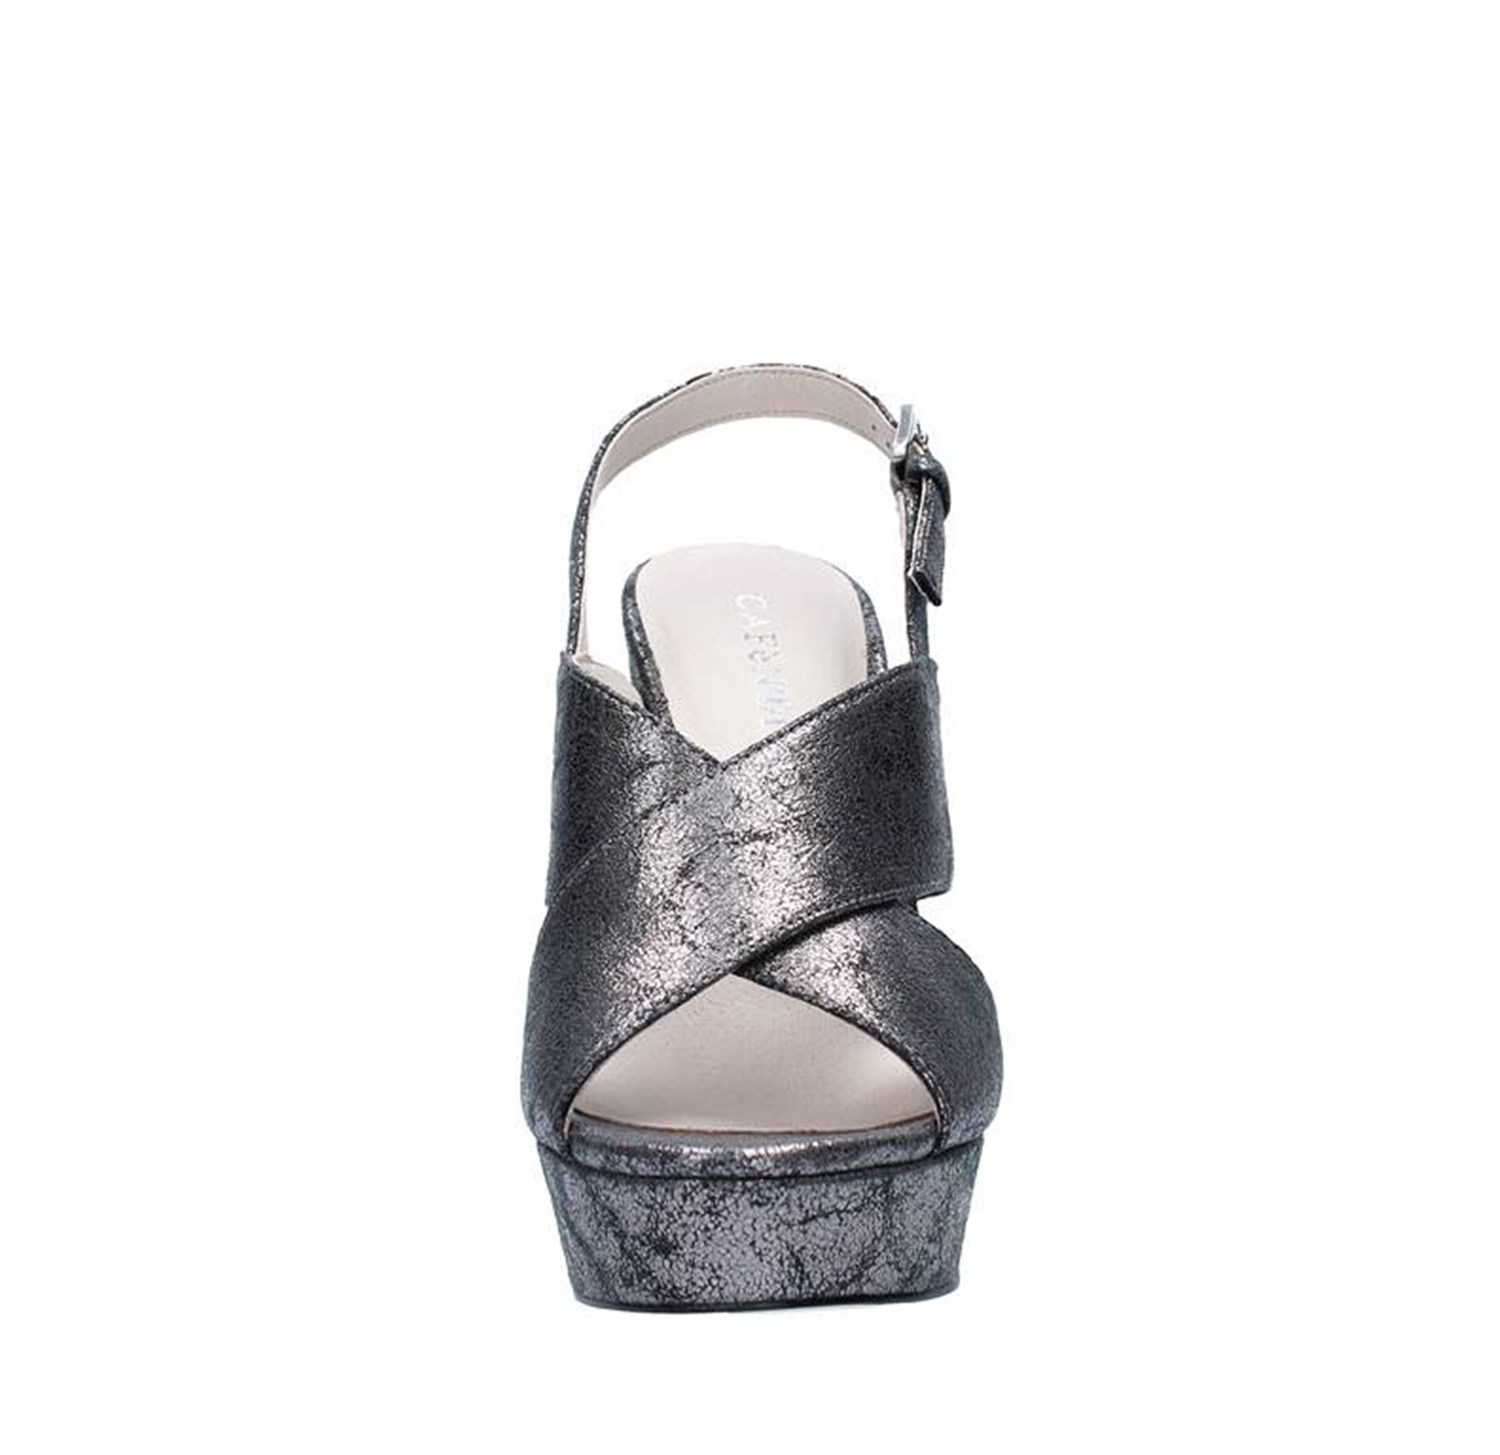 Cafe' Noir Shoes Woman With heel GREY NC922